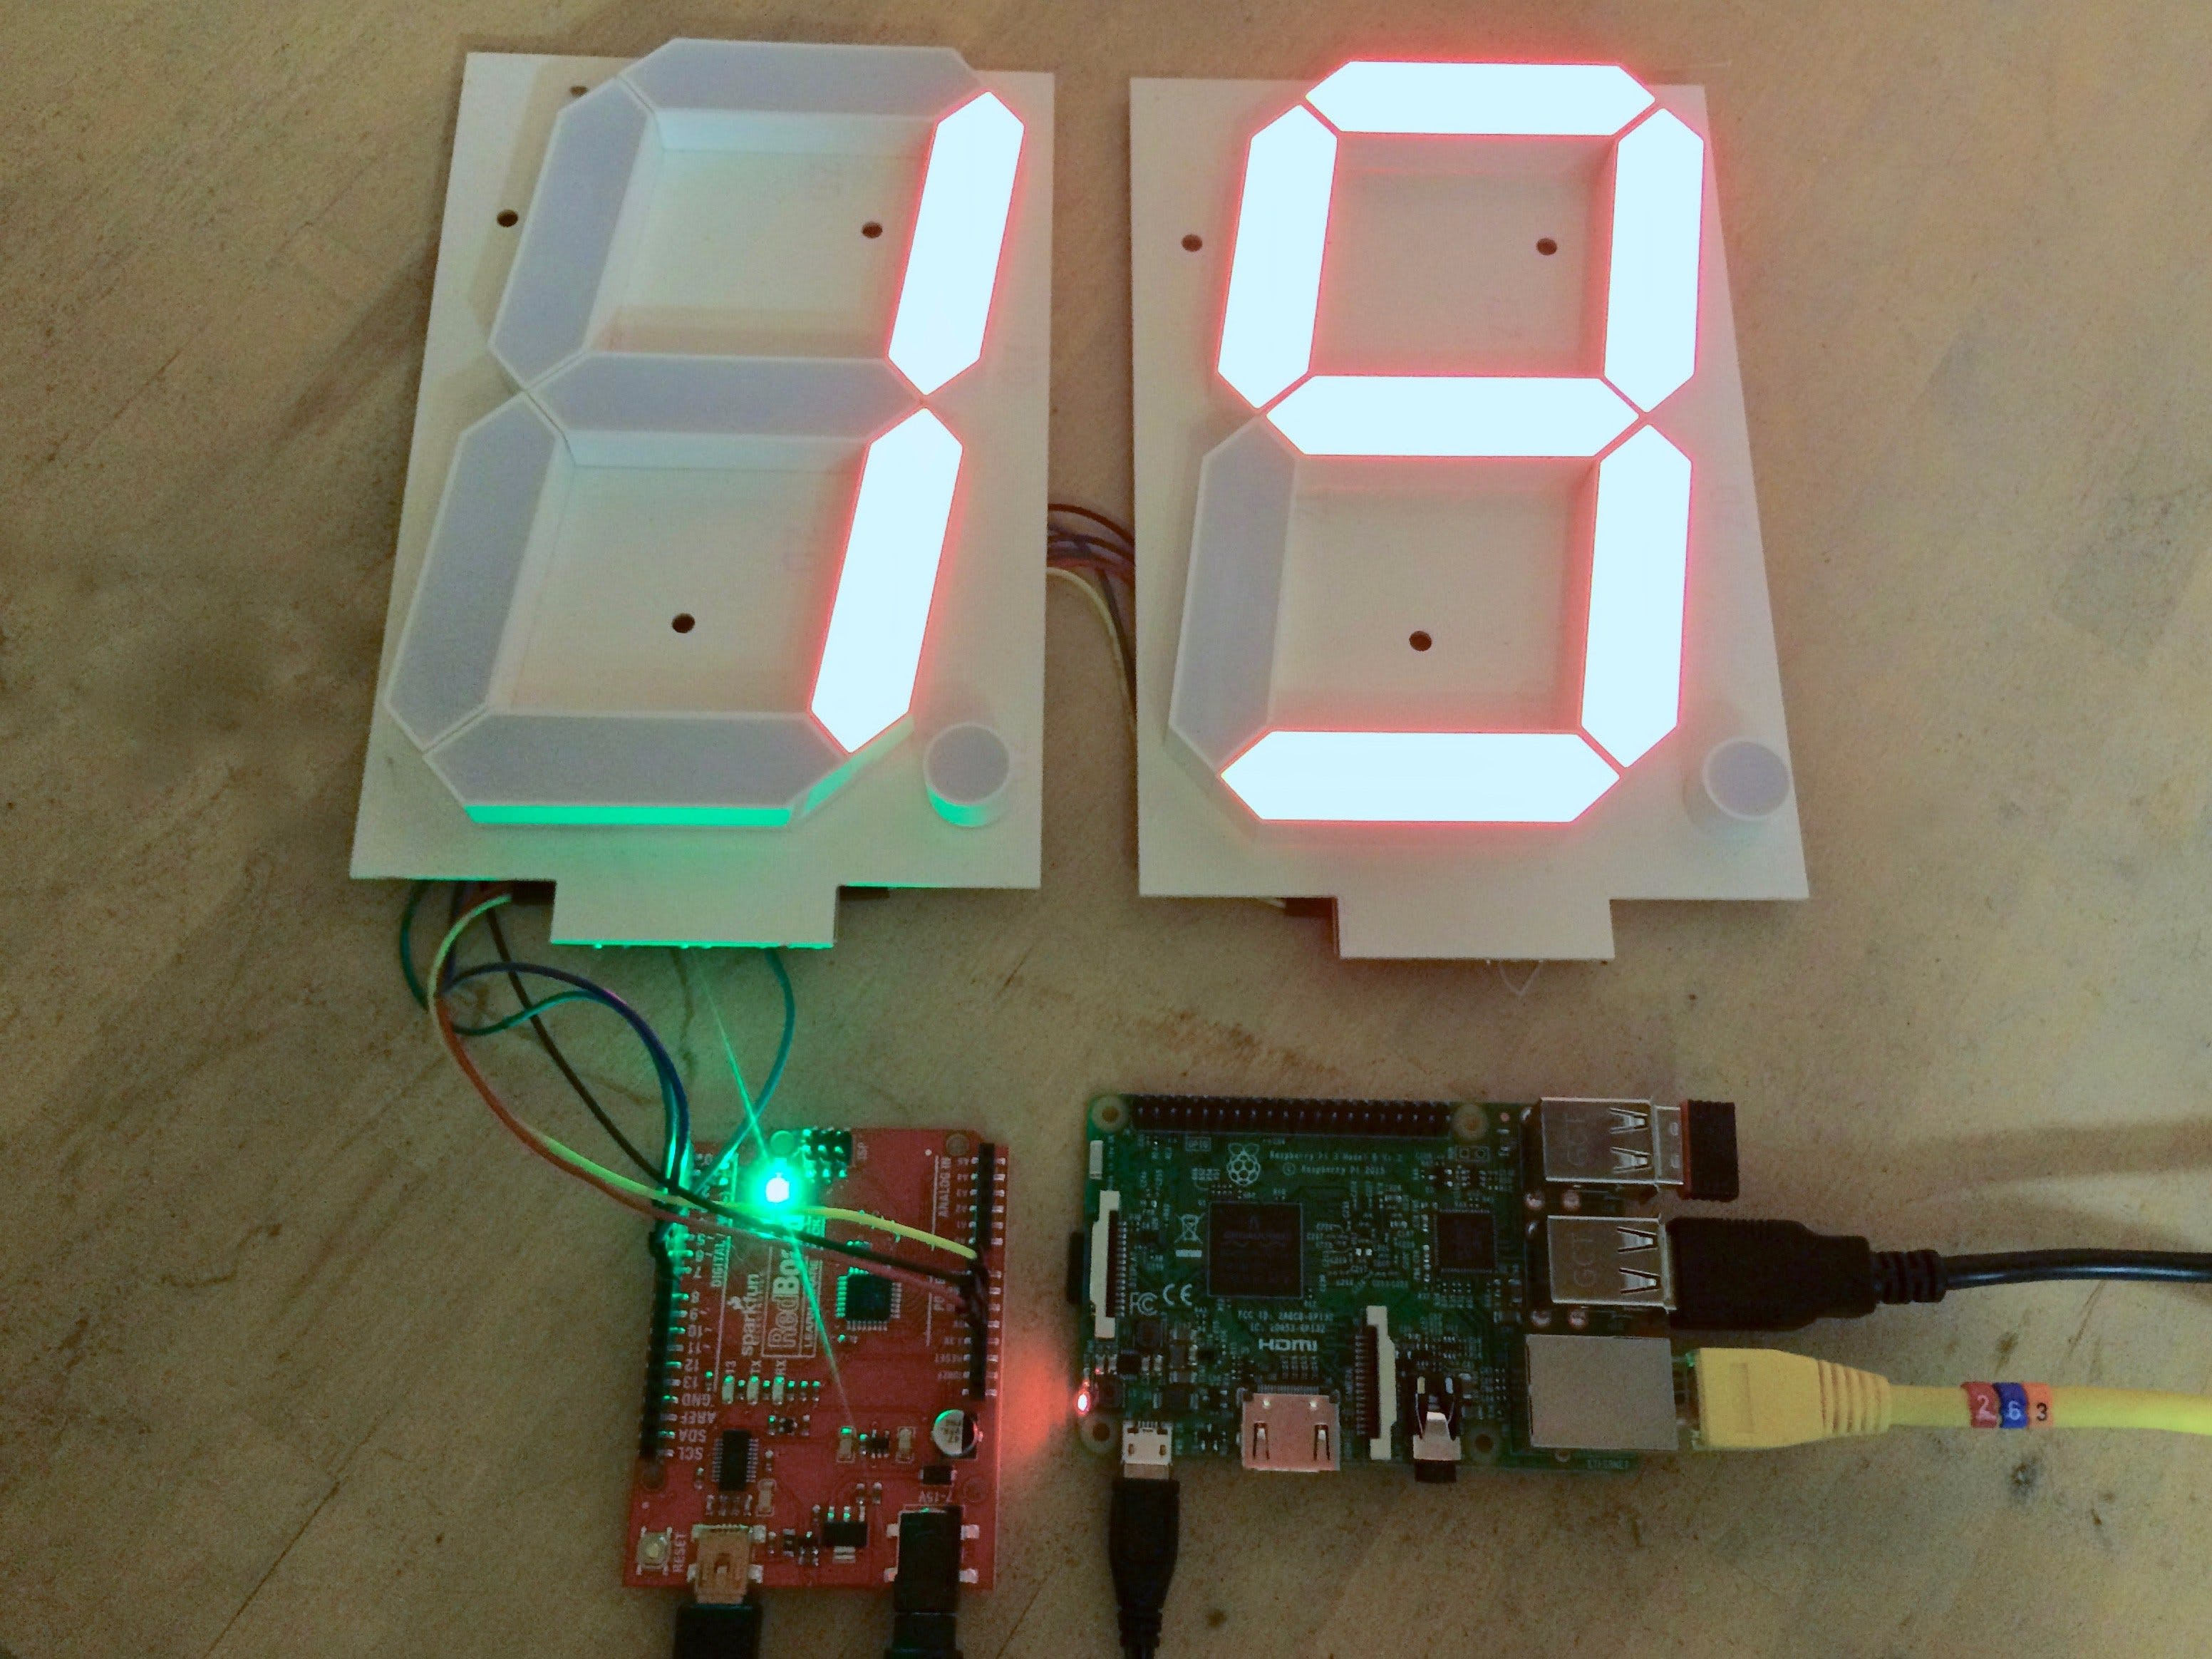 A Raspberry Pi Network Scanner